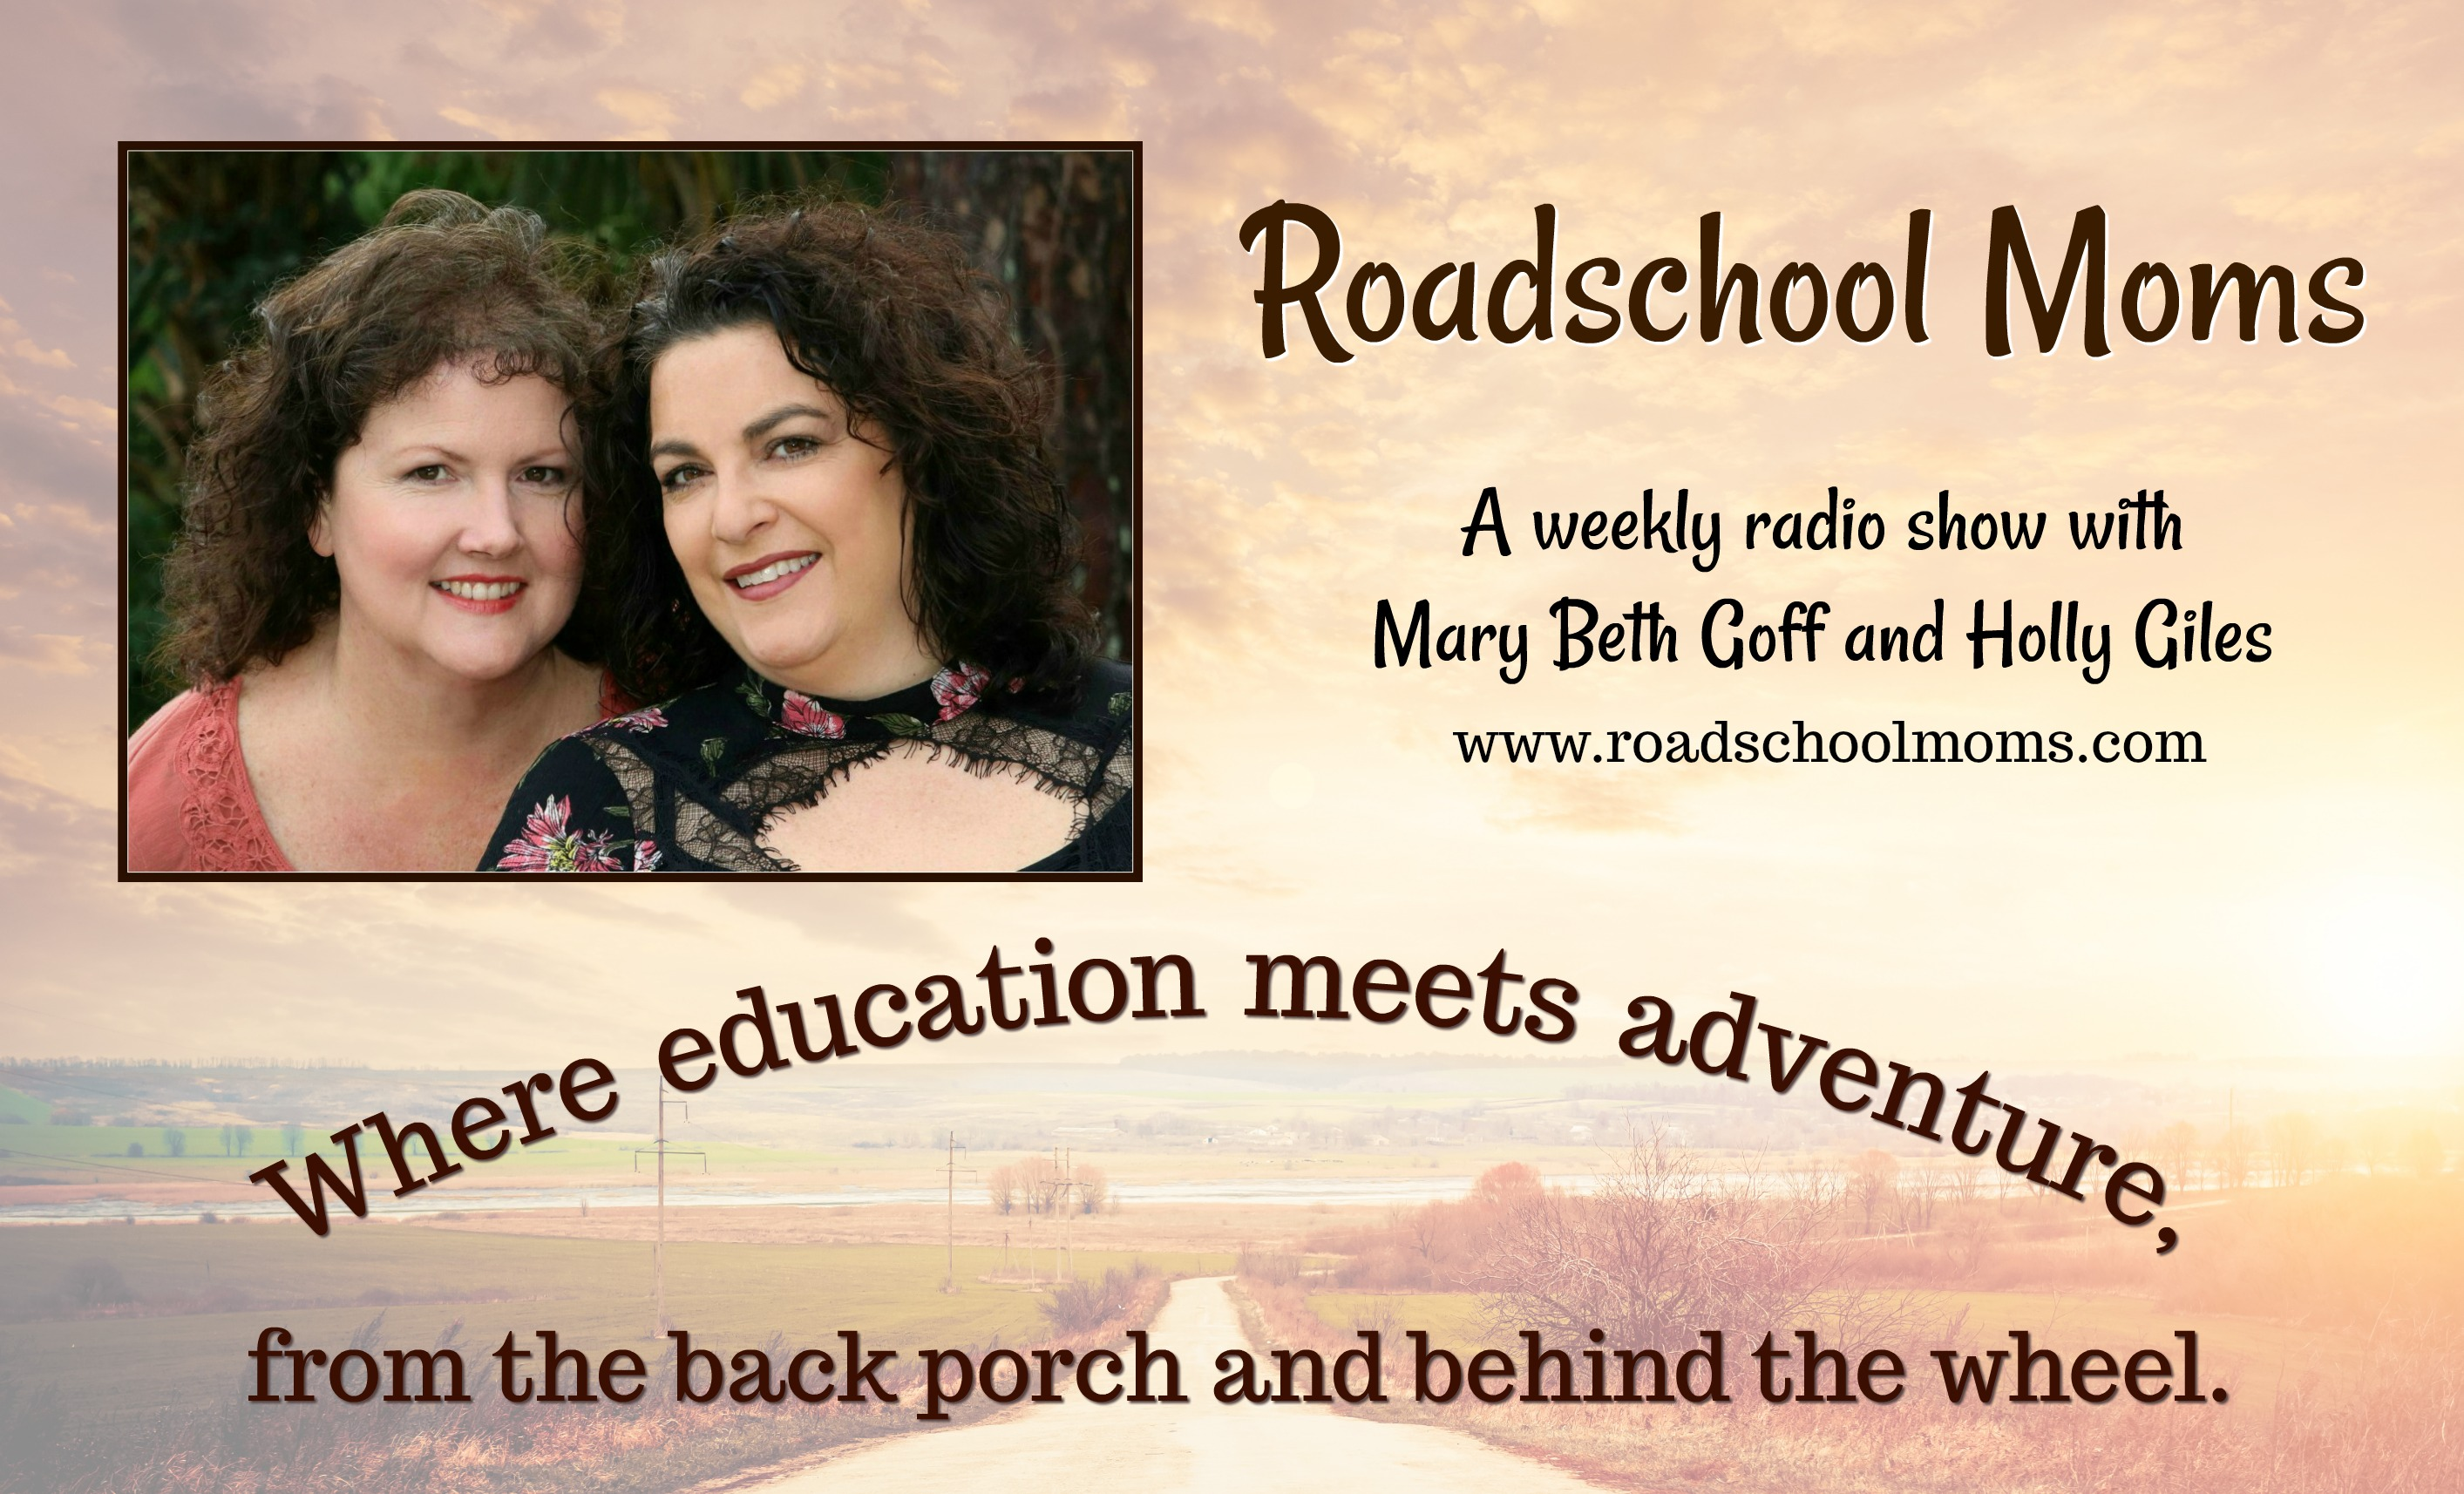 Roadschool Moms© is a weekly internet radio show ministry to connect 39a2f75bb